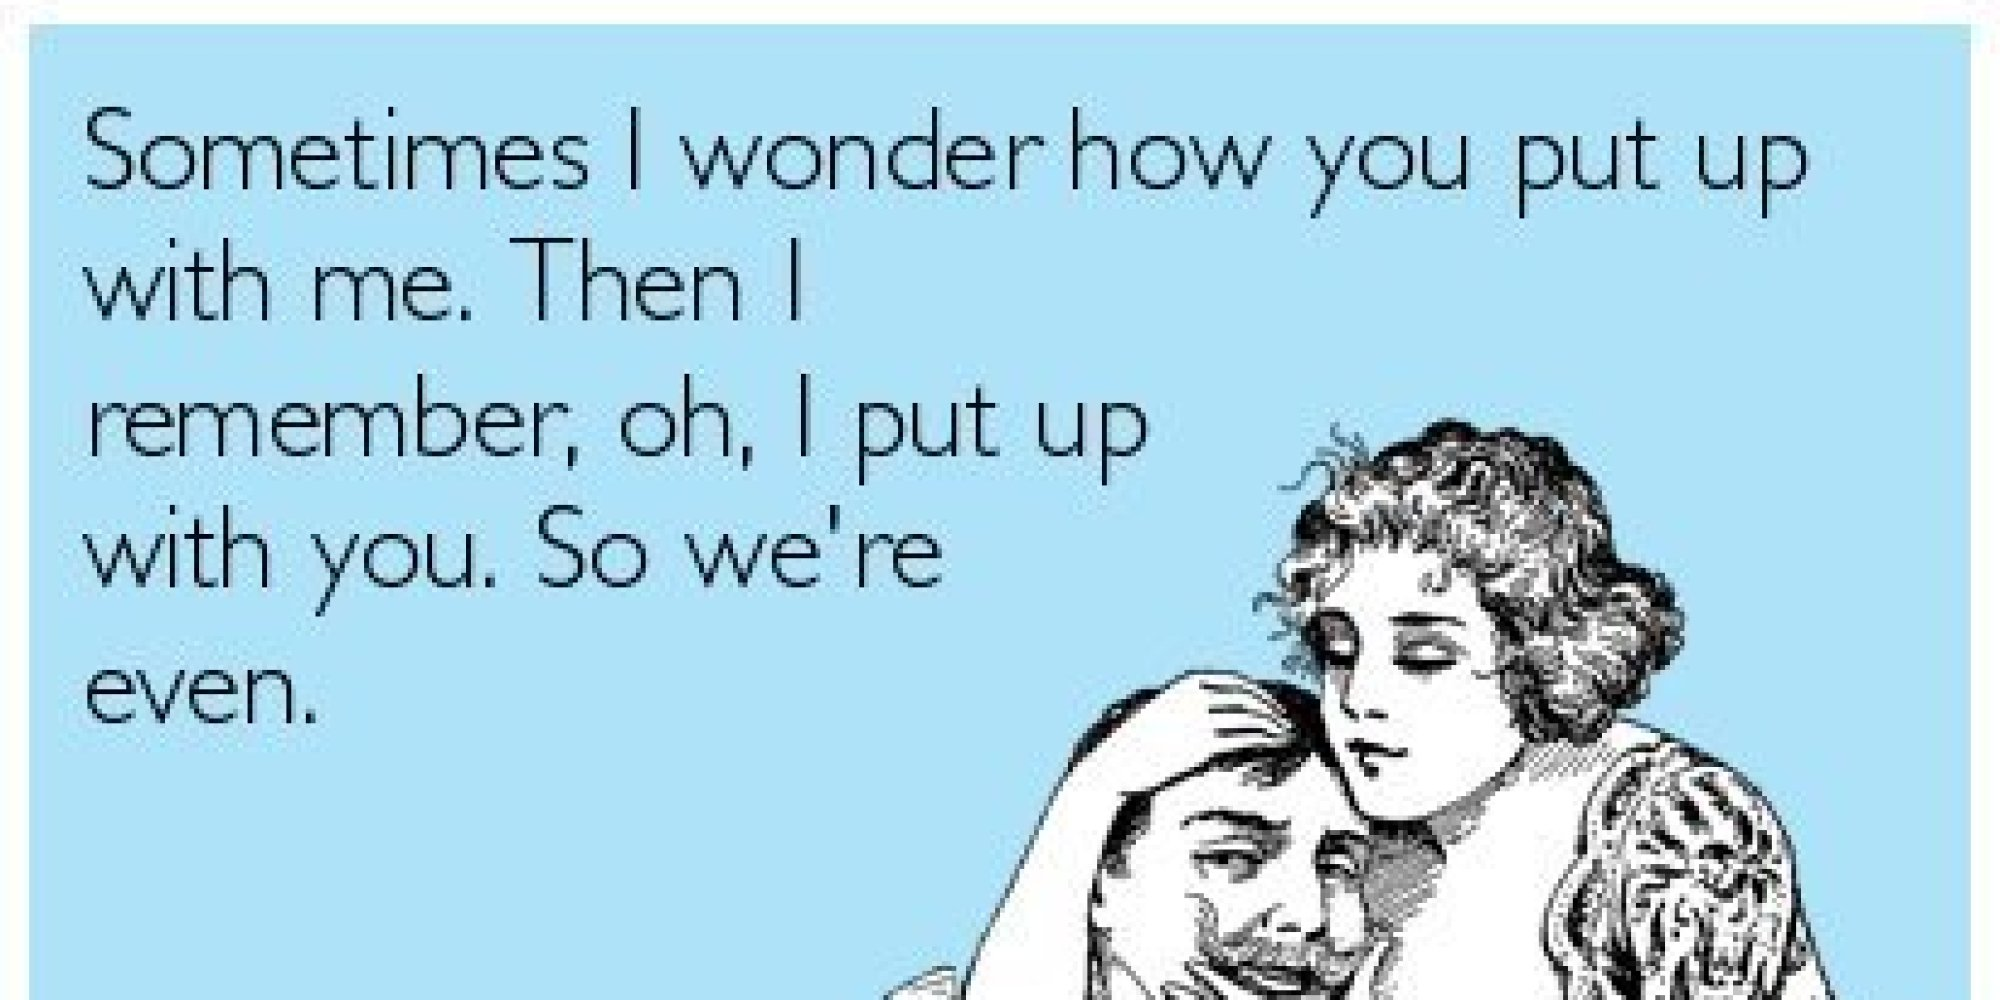 15 Brutally Honest Cards For Couples With A Sense Of Humor HuffPost